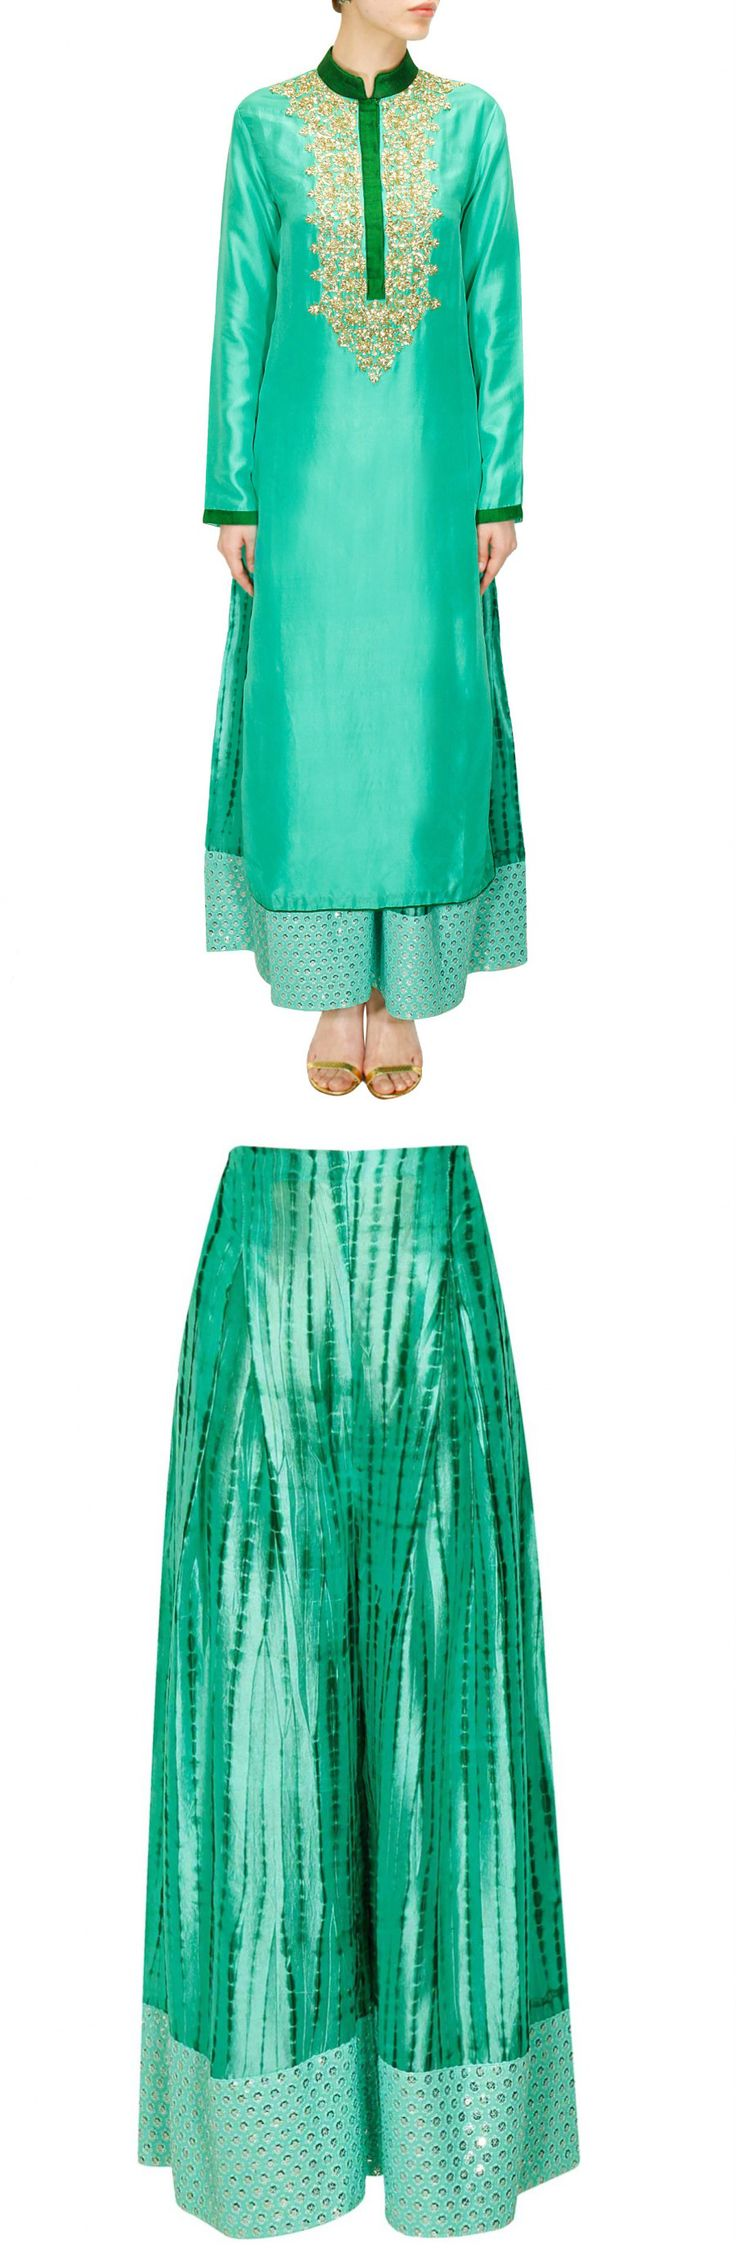 VIKRAM PHADNIS Aqua sequins embroidered kurta with shibori printed pants